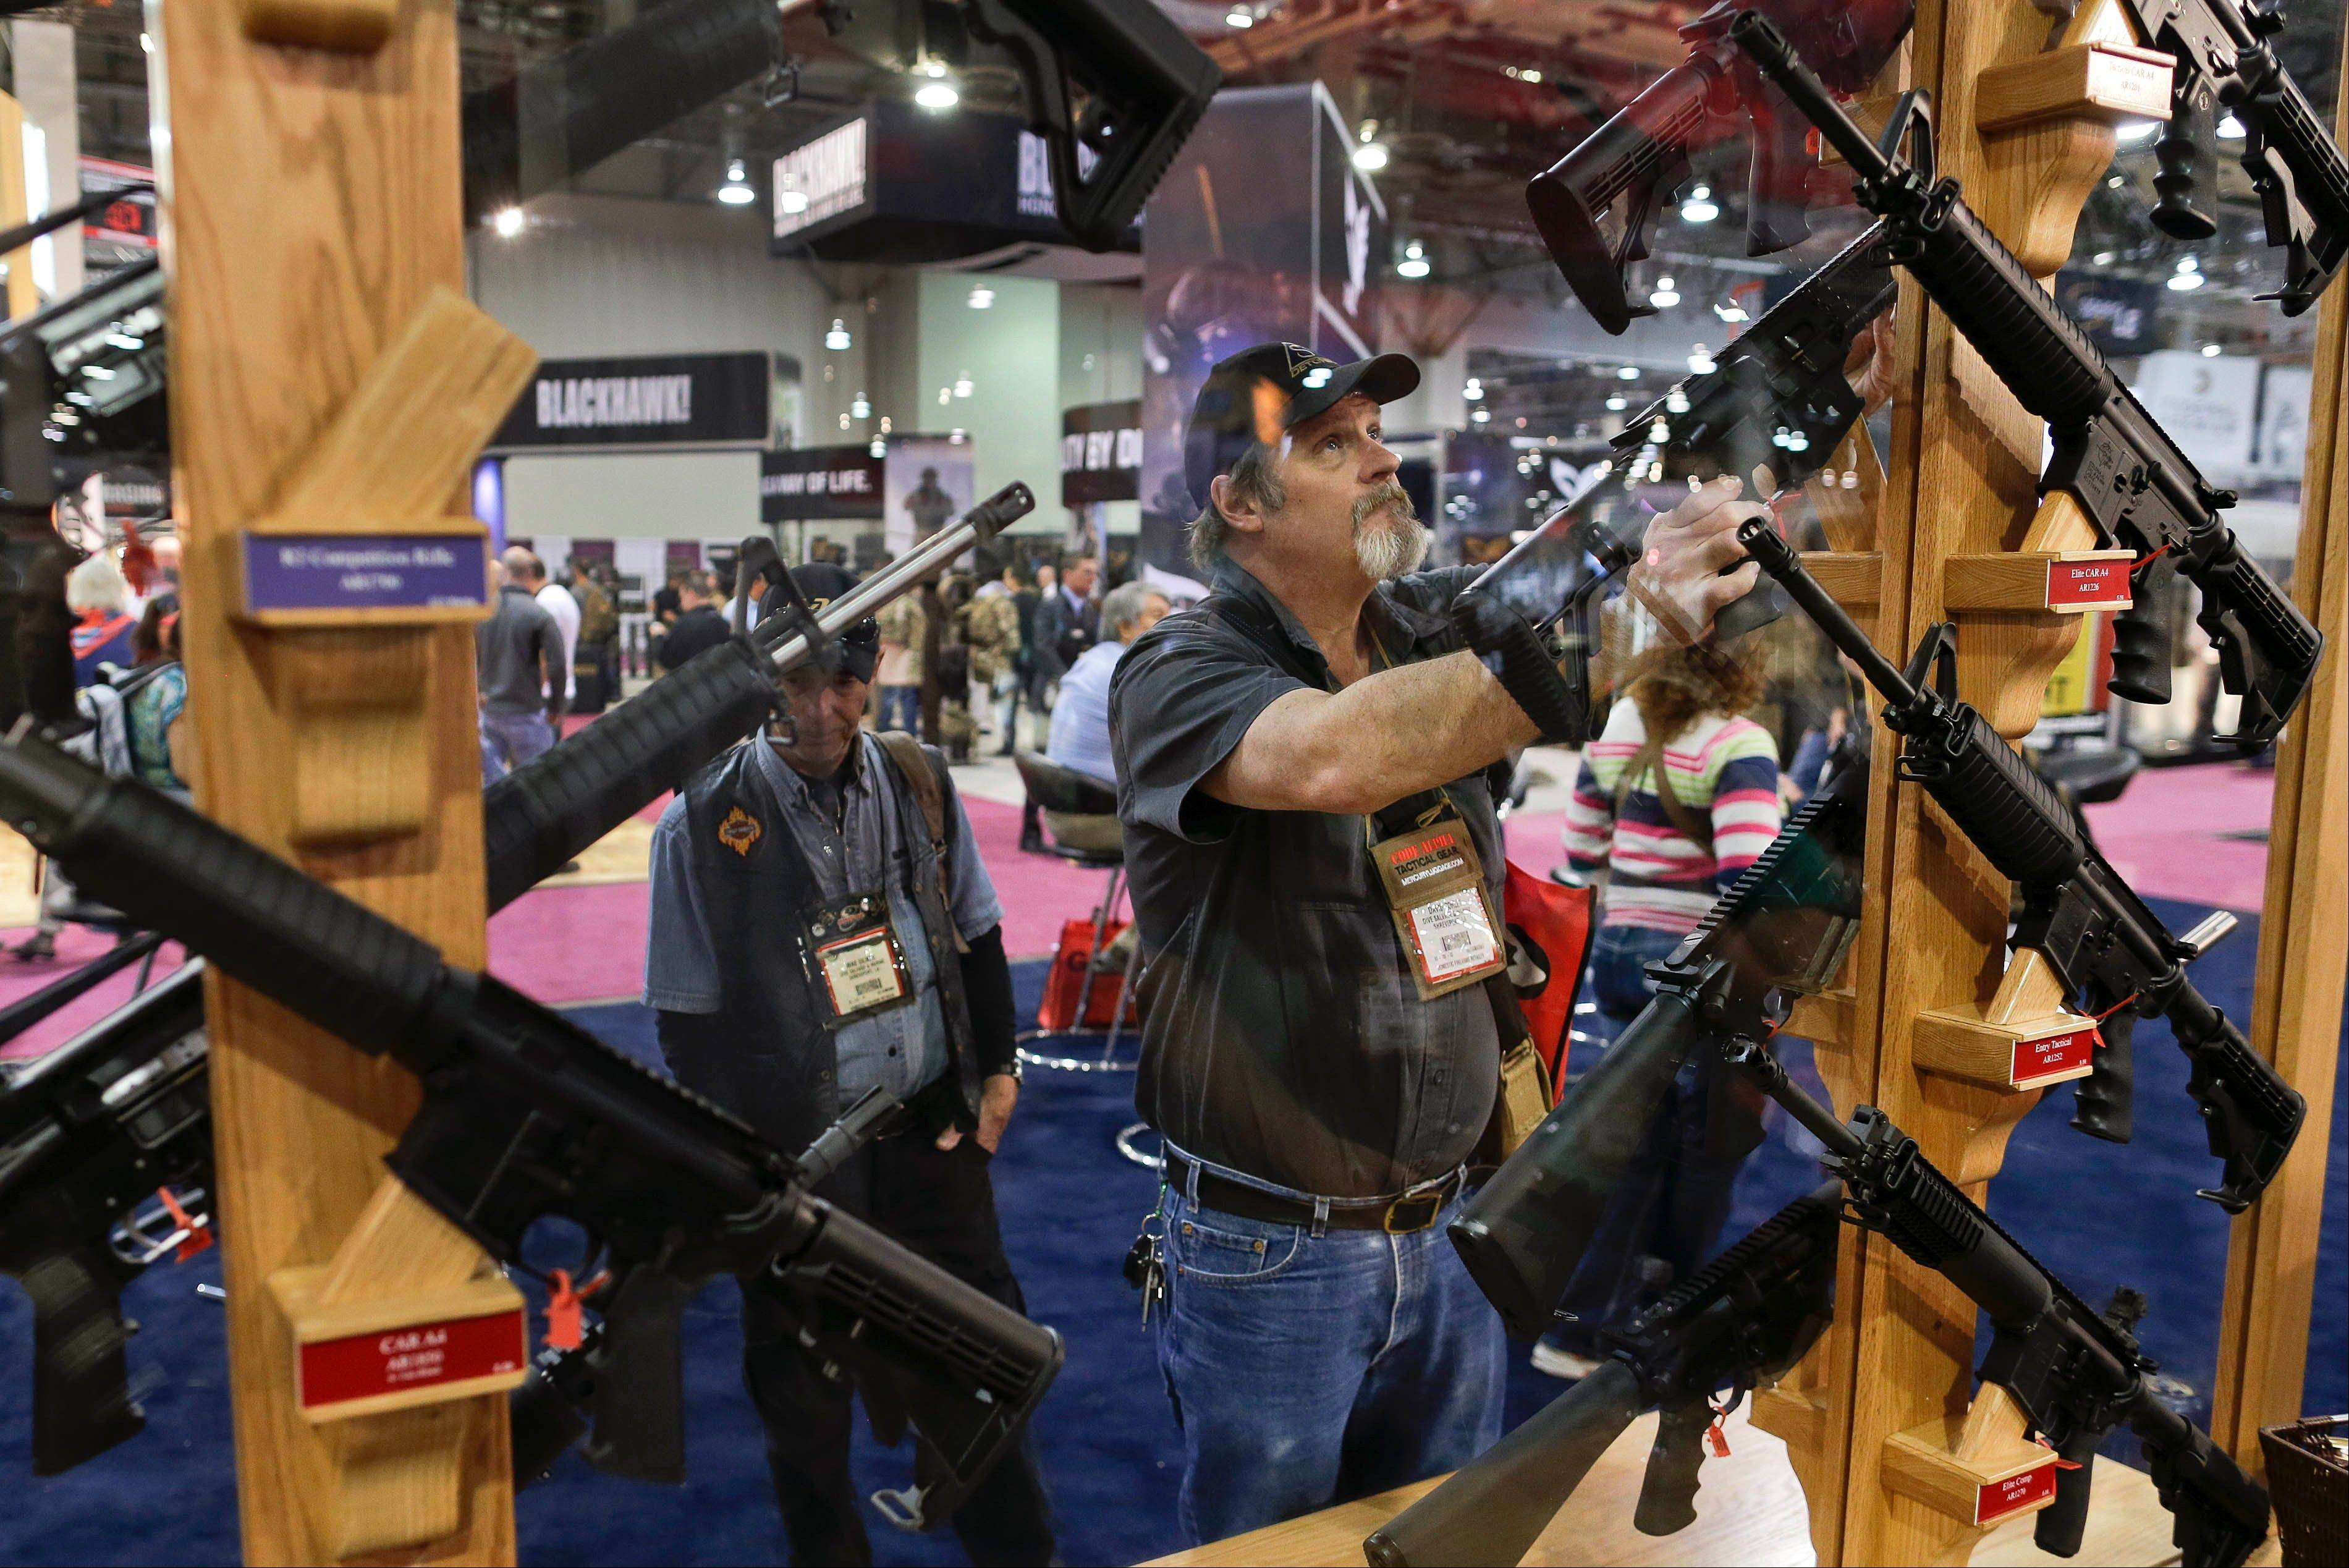 David Corley of Shreveport, La., replaces a rifle on its display rack Thursday while browsing through the Rock River Arms display booth at the 35th annual SHOT Show in Las Vegas. The world's largest gun and outdoor trade show ran through Friday.